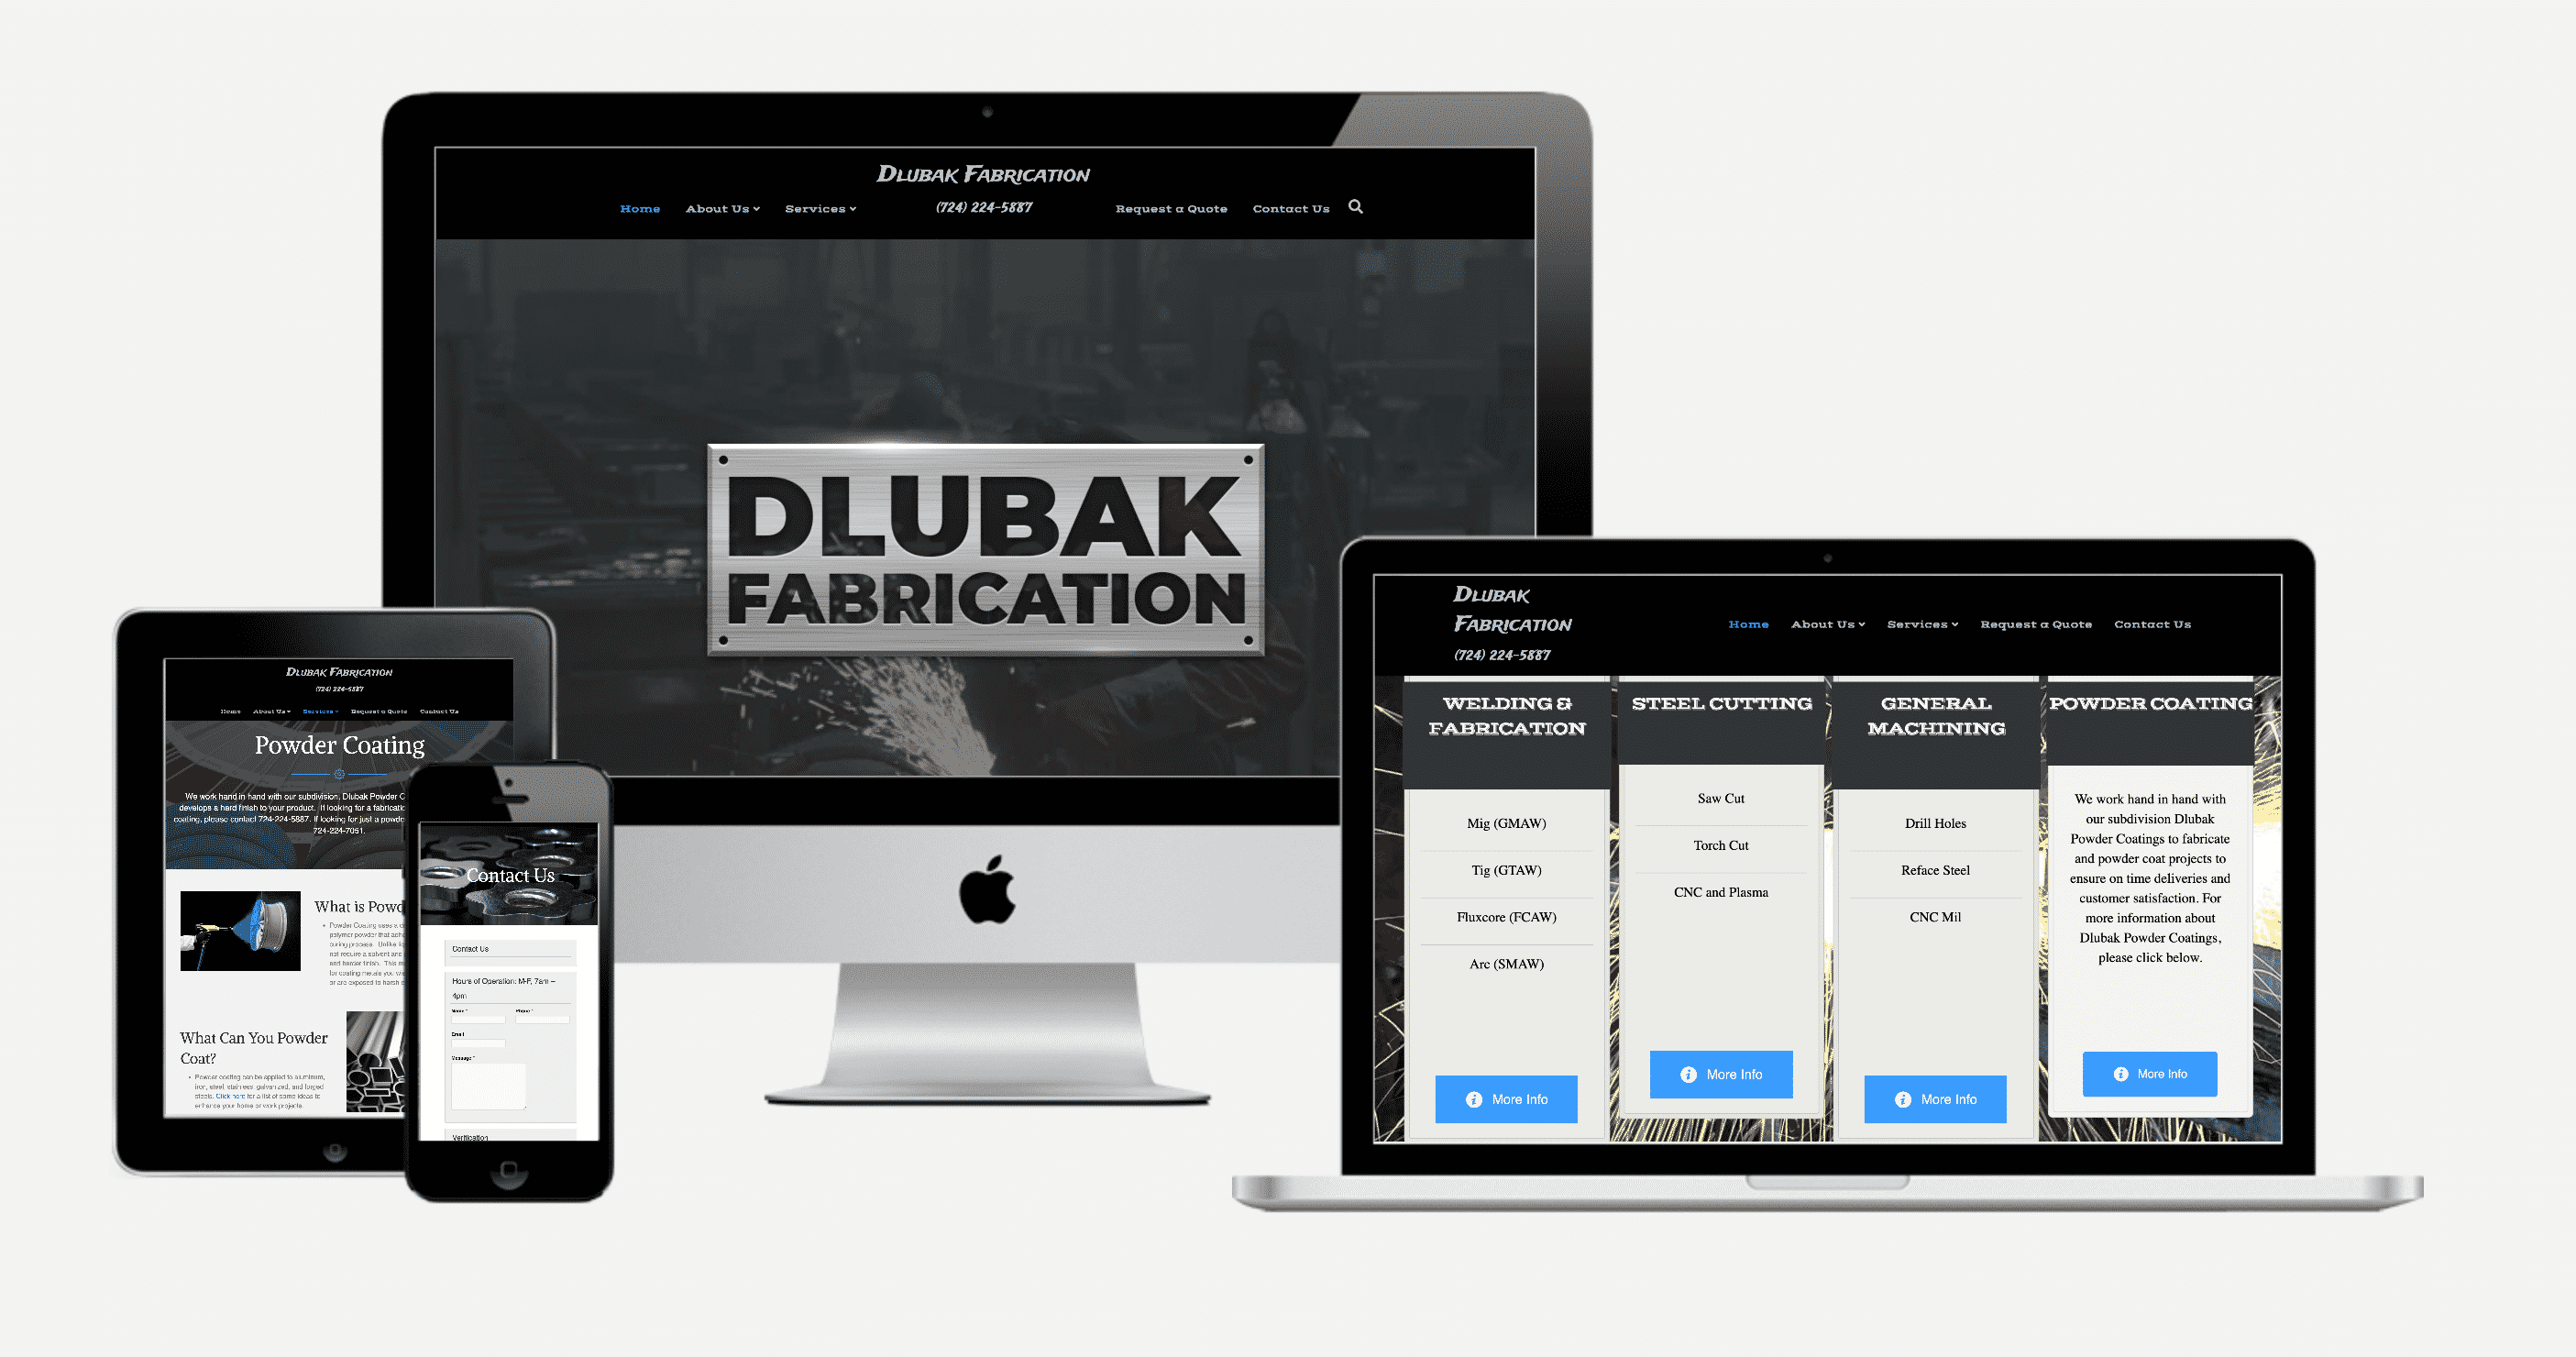 Dlubak Fabrication website mockups on devices